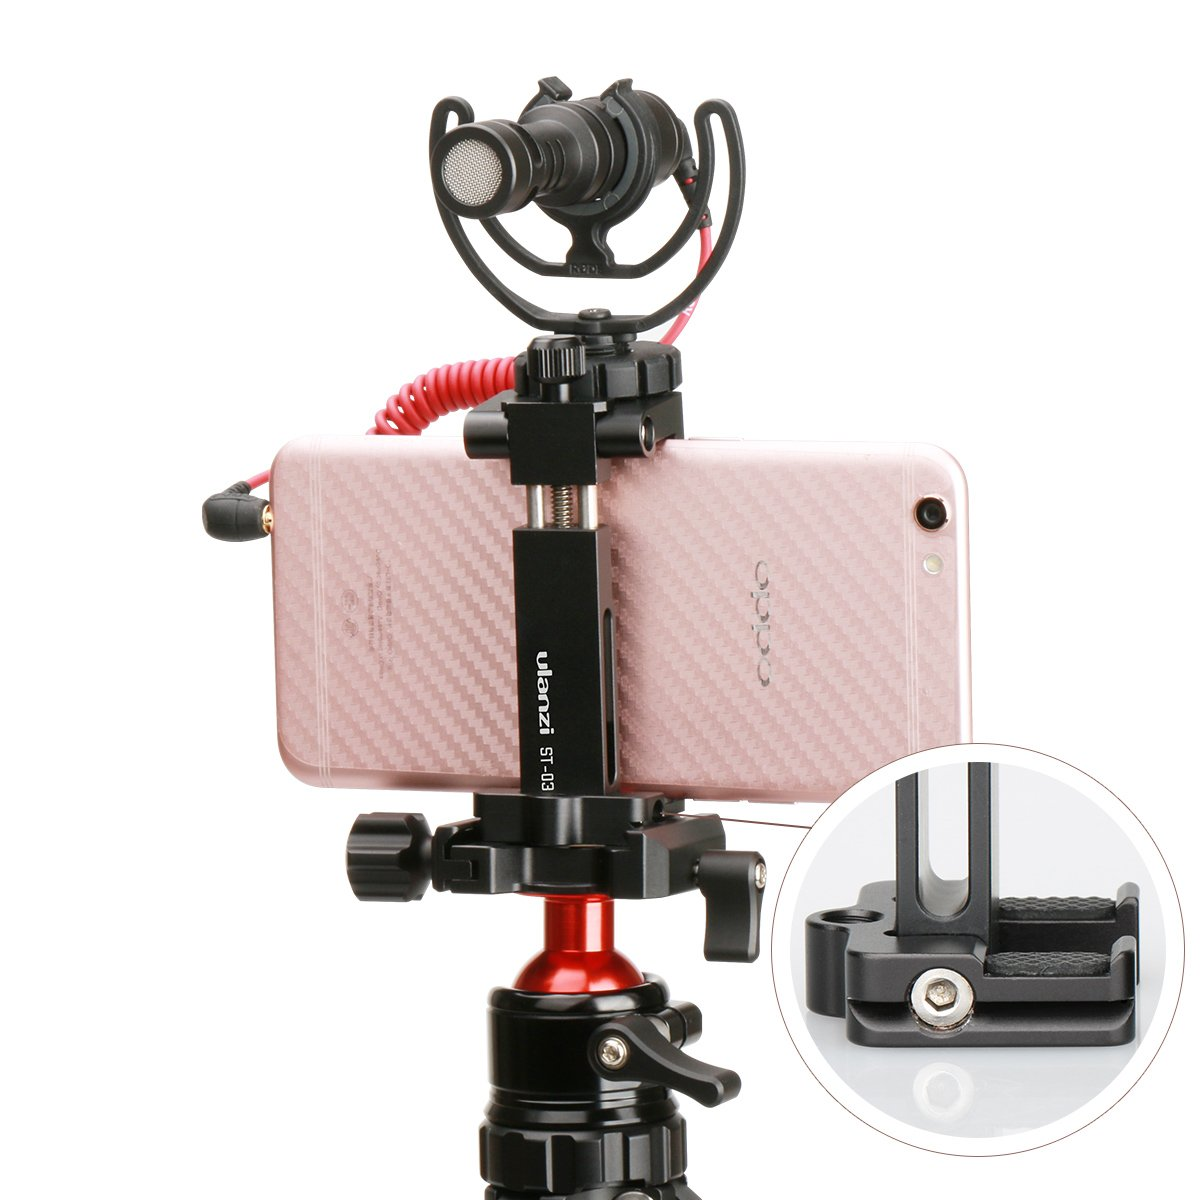 Ulanzi ST-03 Metal Smart phone Tripod Mount with Cold Shoe Mount and Arca-Style Quick Release Plate for iPhone 7 Plus Samsung HuaWei,Cell Phone Tripod Holder Clip Adapter for JOBY GorillaPod (Black)